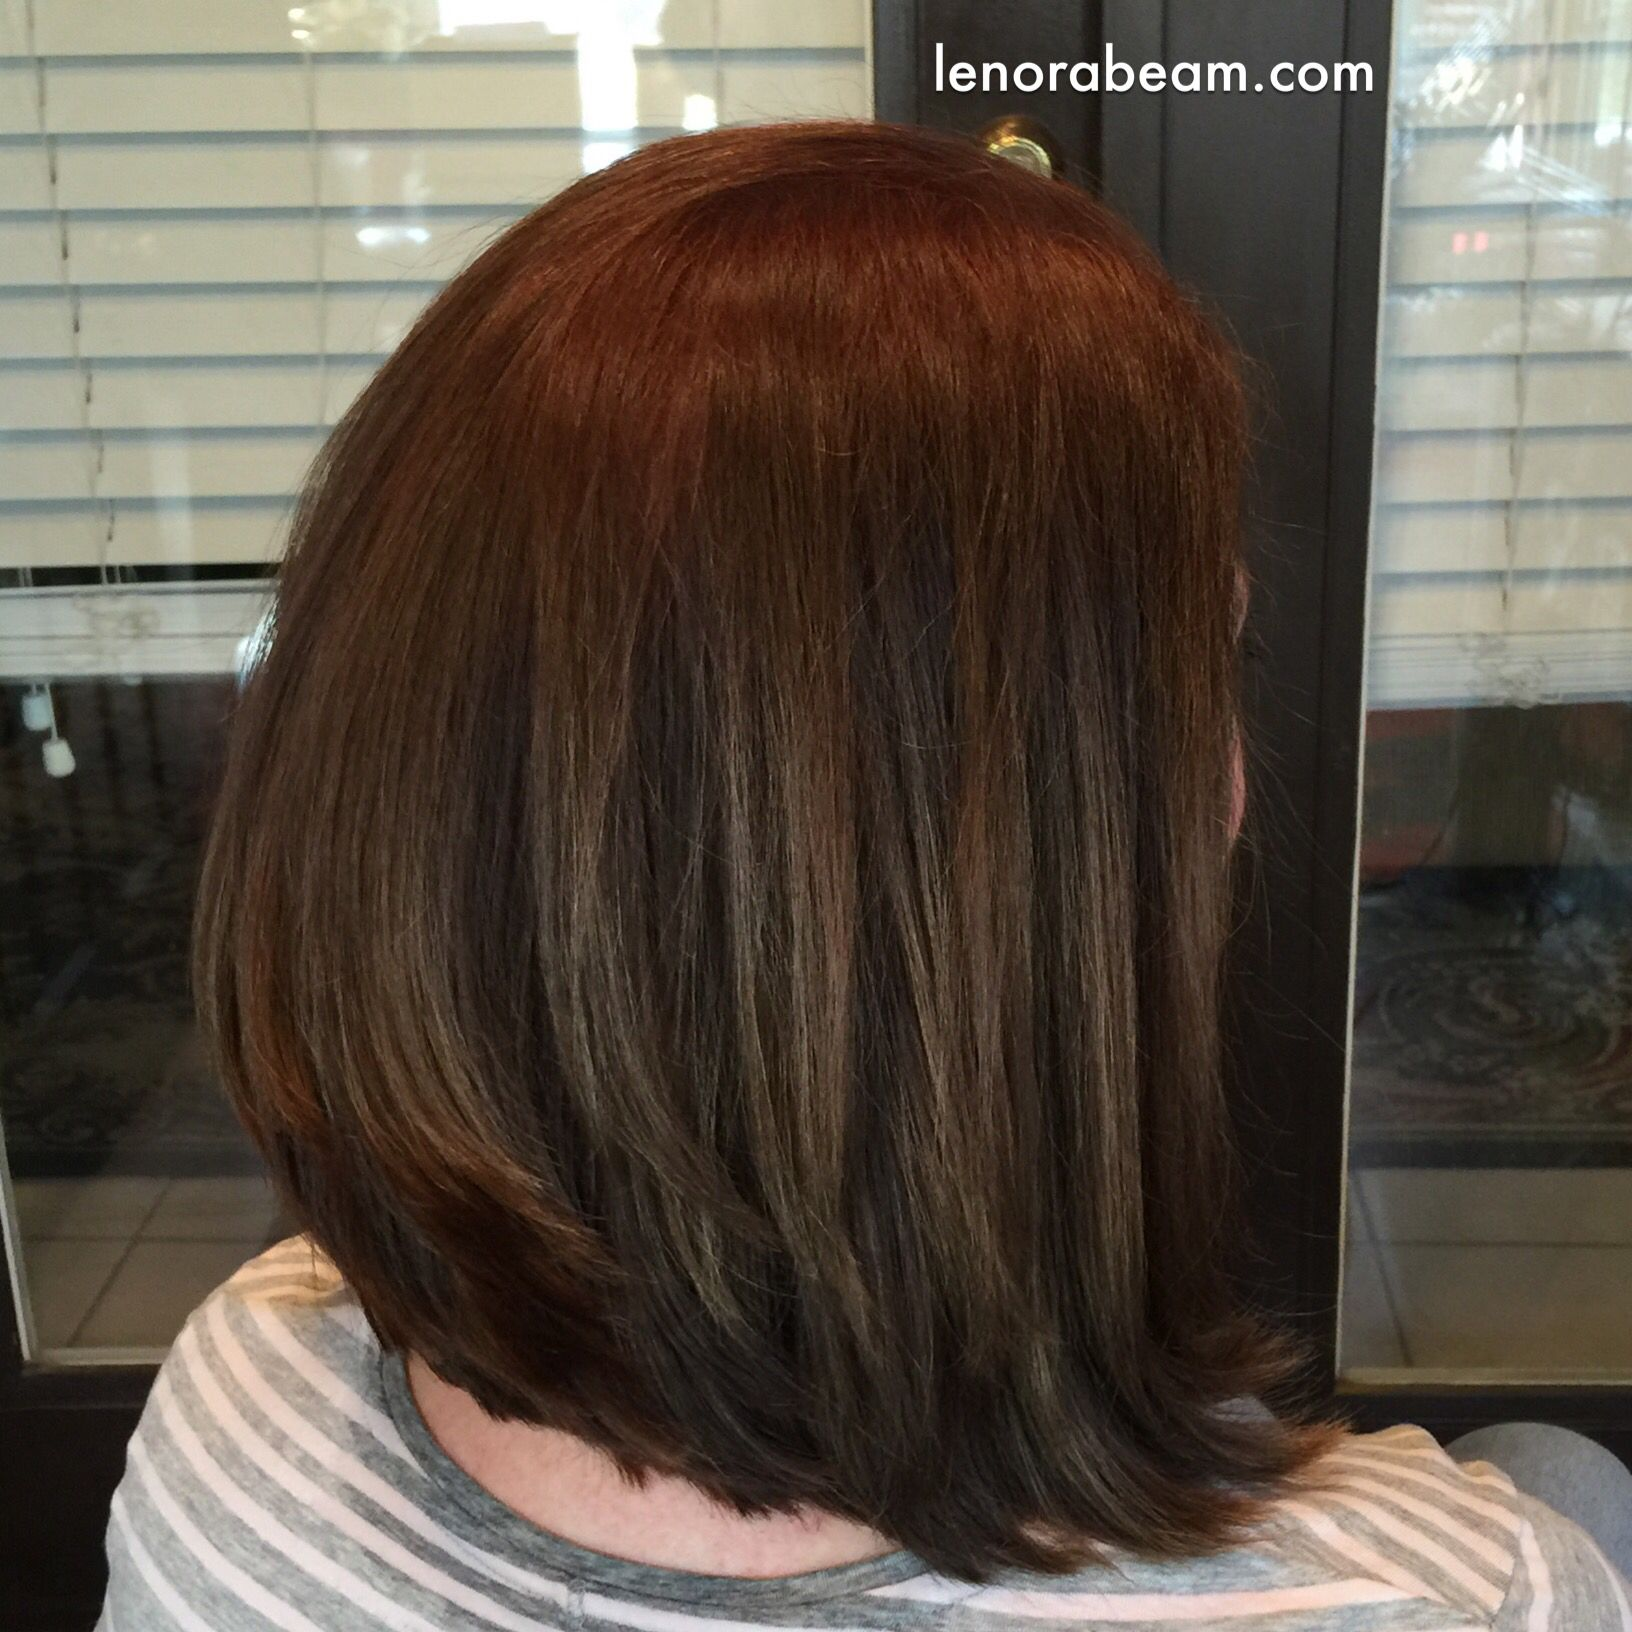 Trendy Lob Haircut Haircolor Redken Color Fusion 6n